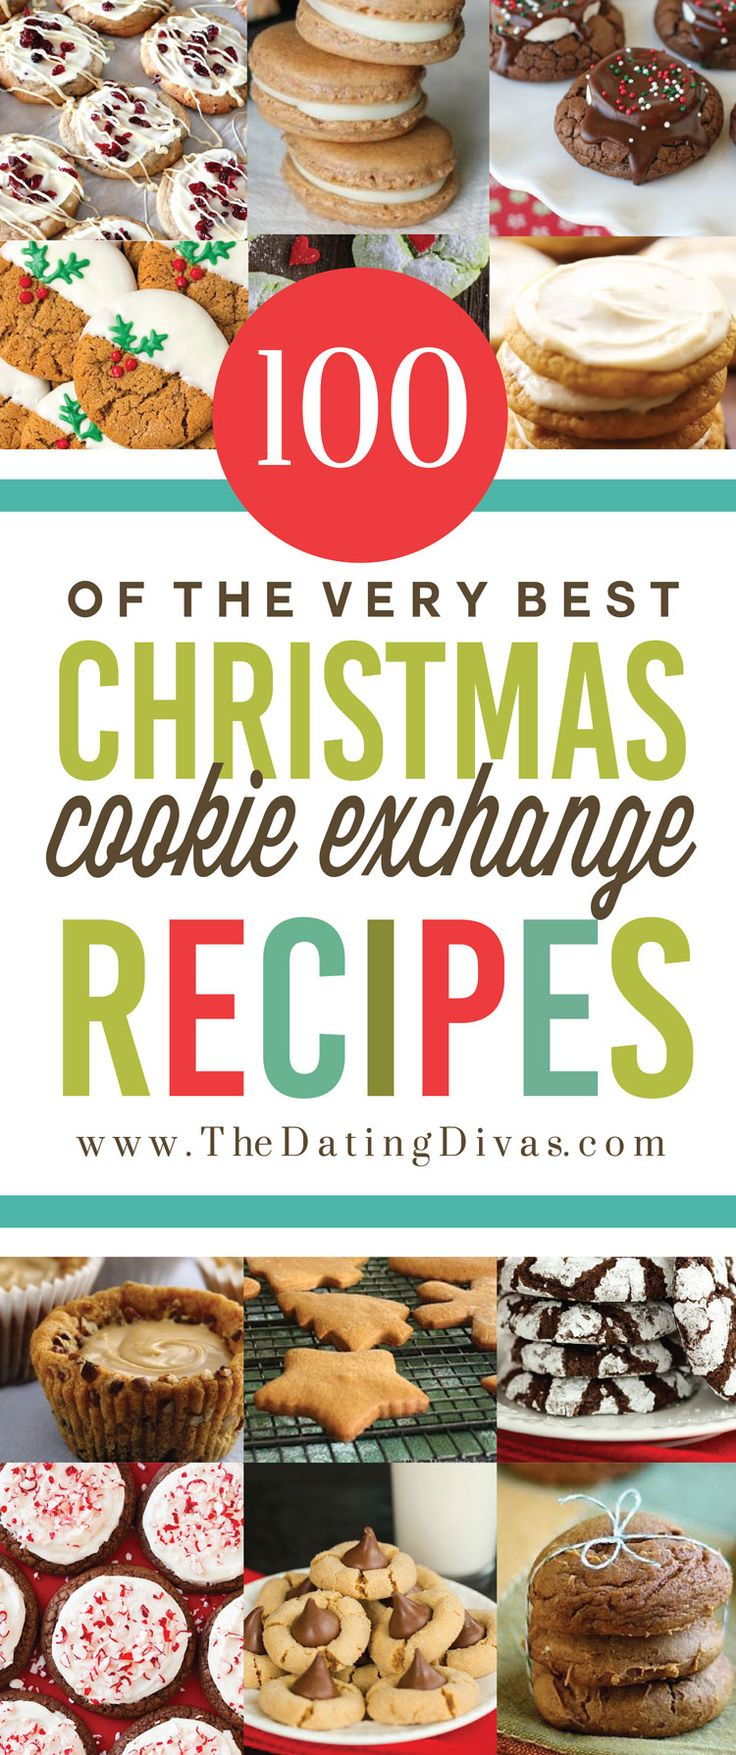 The absolute best list of Christmas recipes - especially for a Cookie Exchange Party!